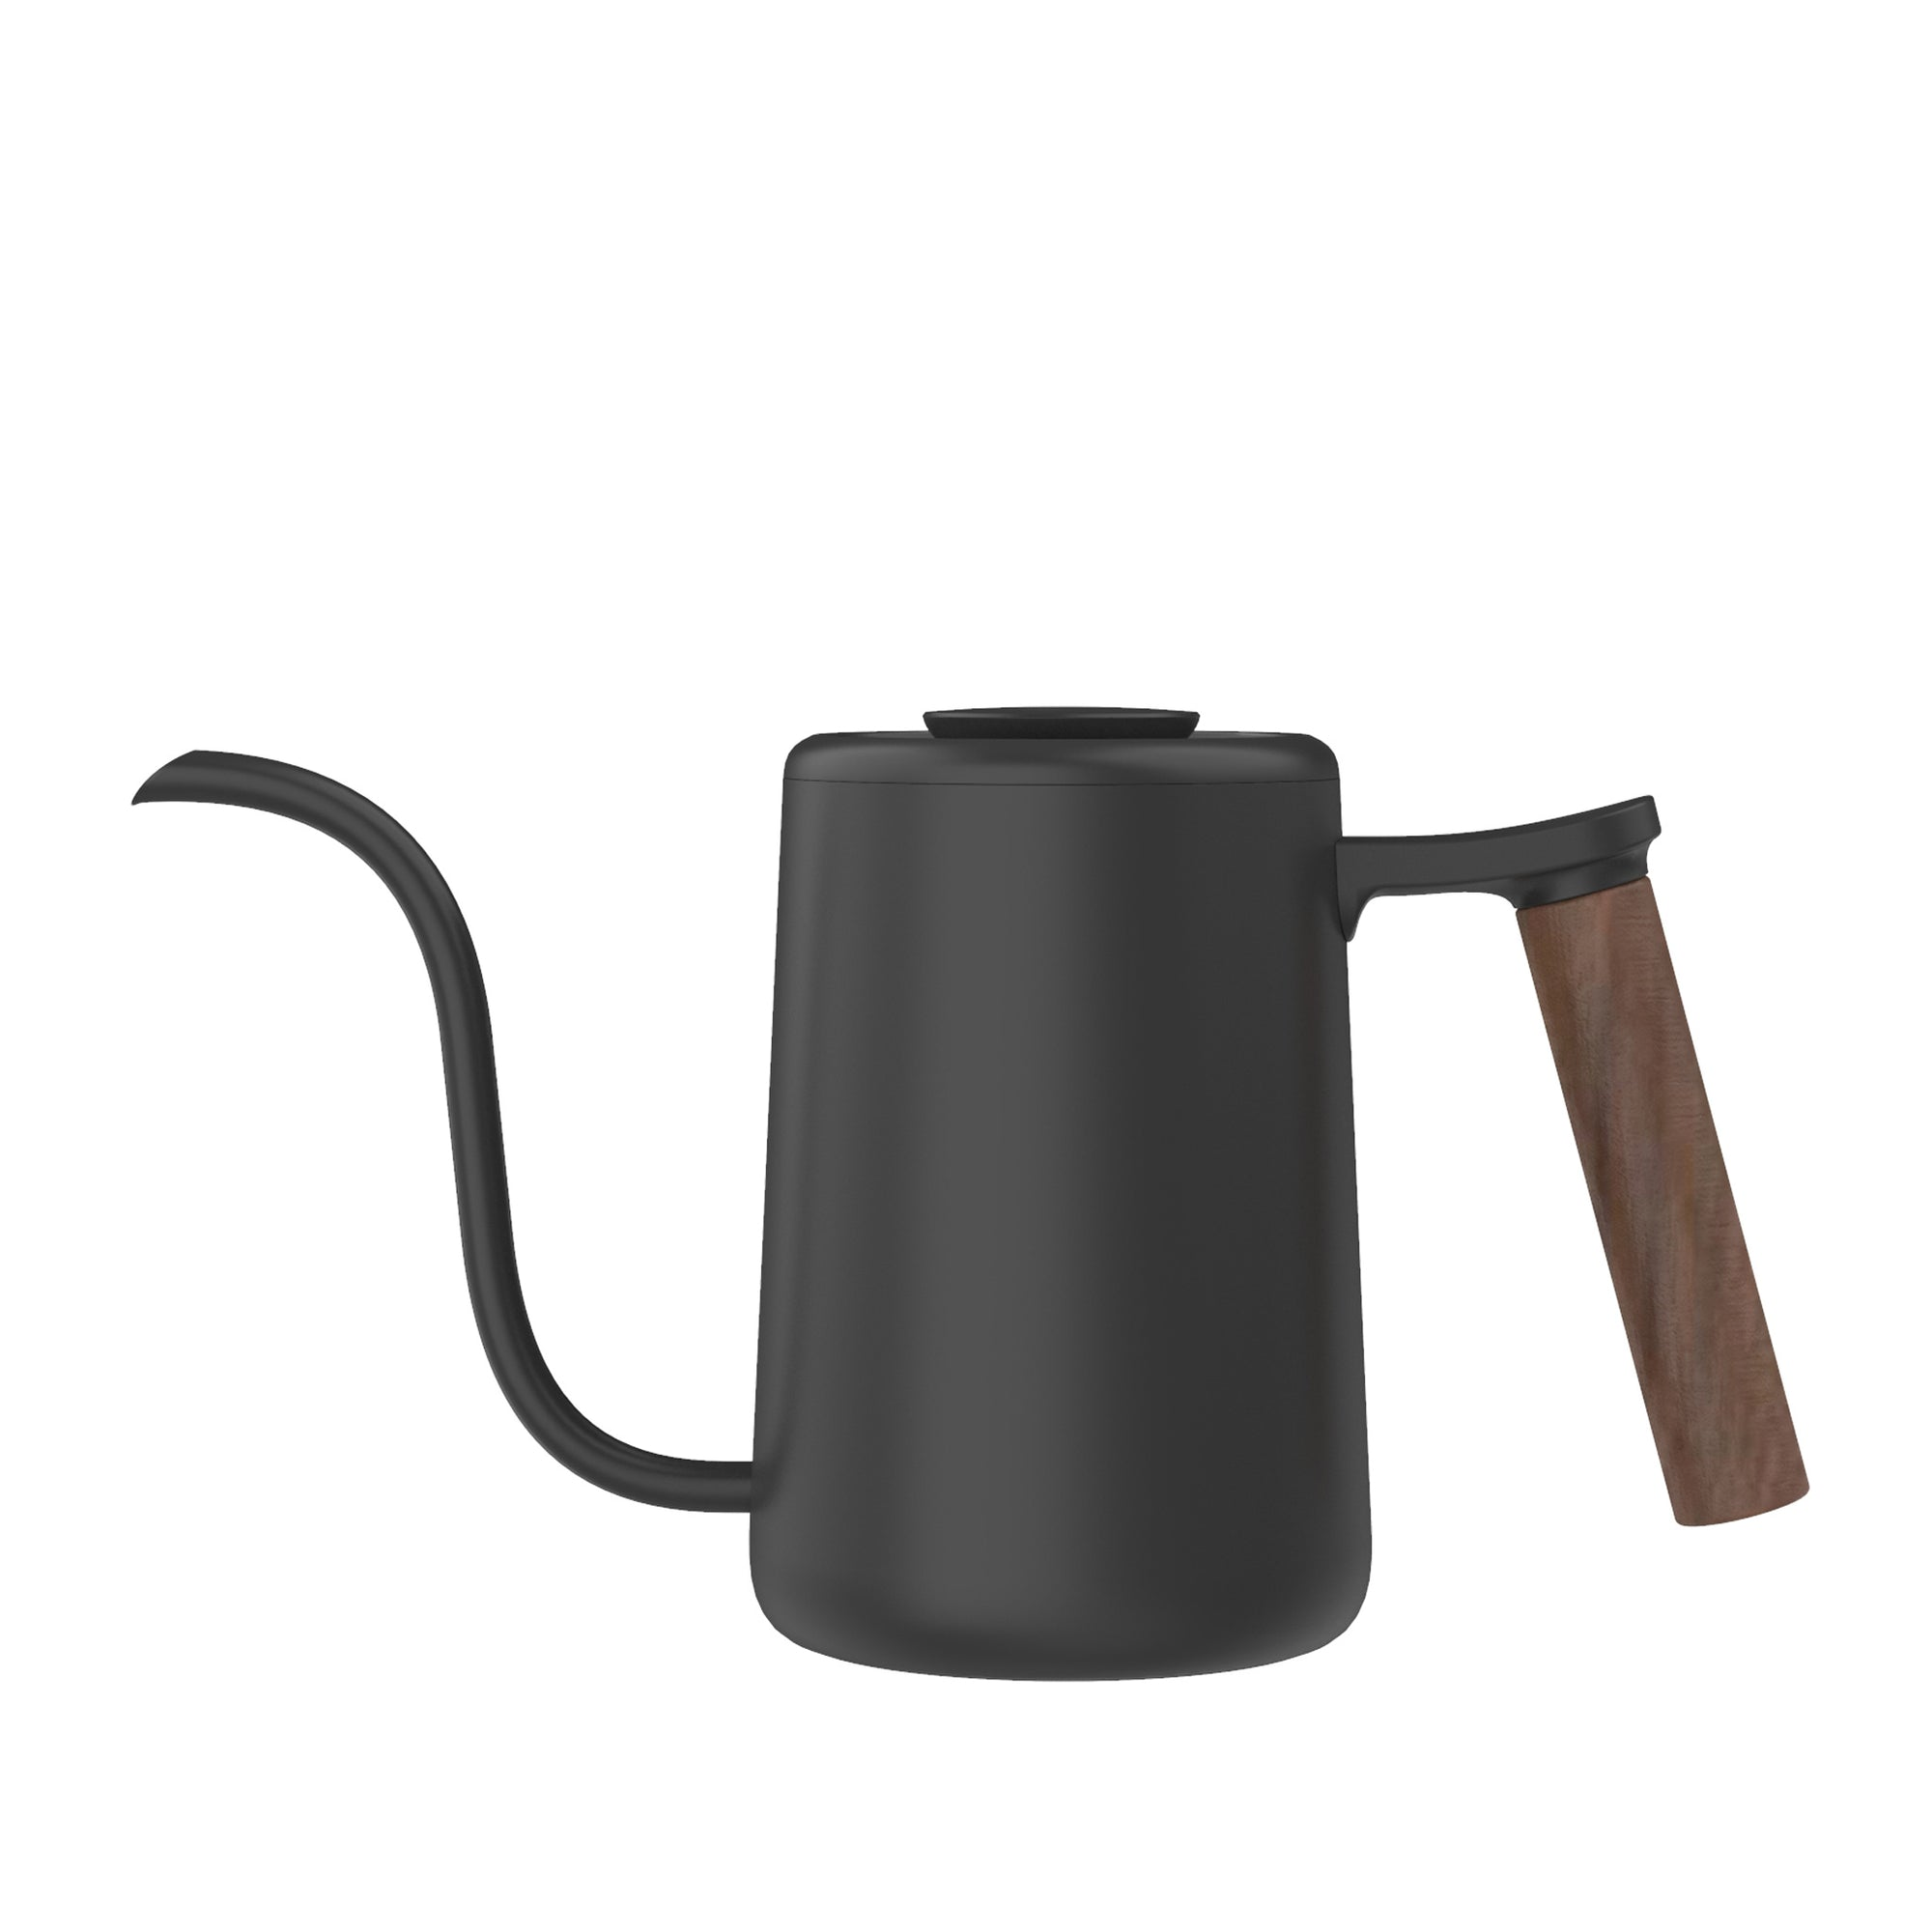 Timemore Youth Kettle Black - Espresso Gear